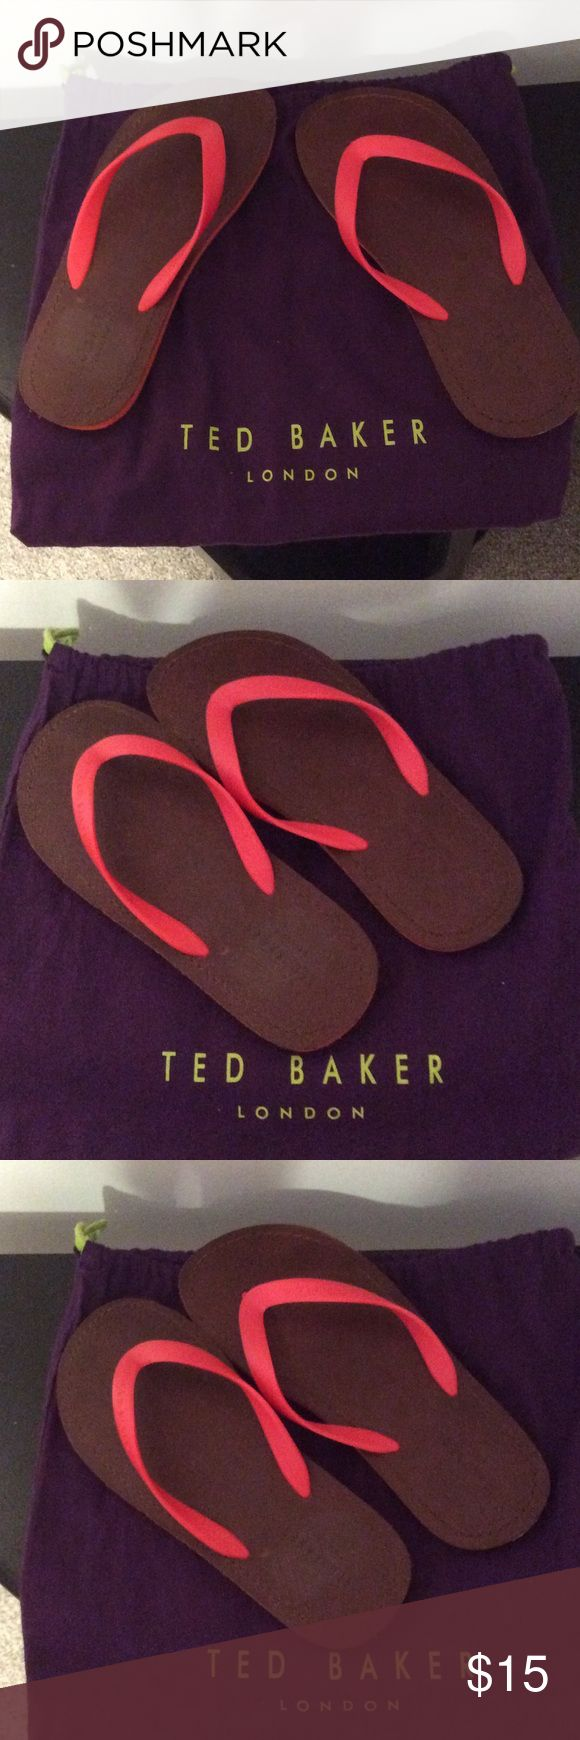 NEW! Men's Ted Baker Flip Flops Leather insoles with man made straps. I ship the same or next business day! Ted Baker Shoes Sandals & Flip-Flops